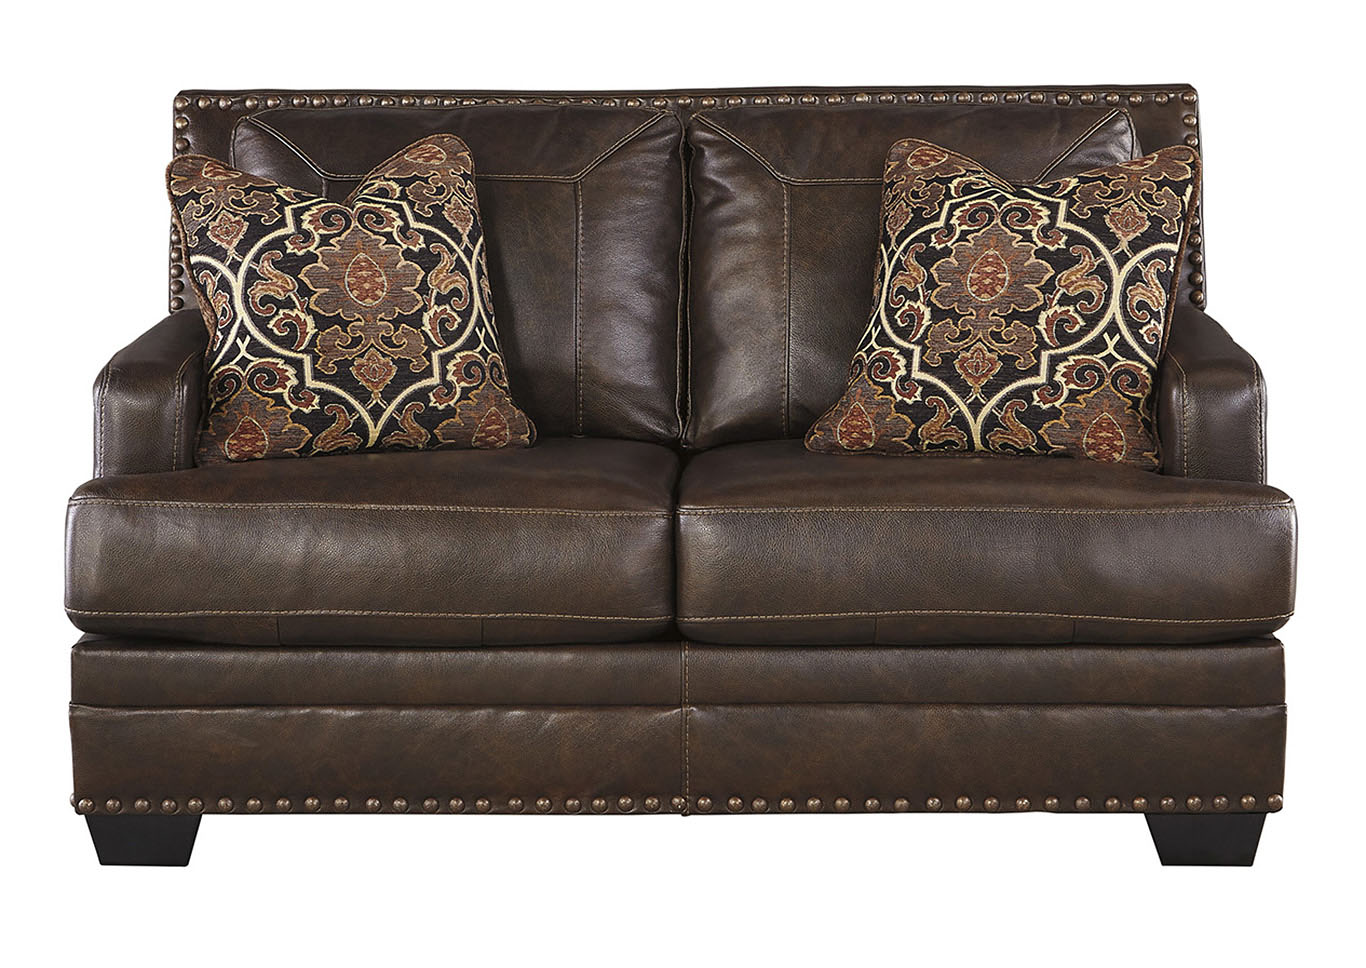 Northwest furniture outlet corvan antique loveseat for Furniture northwest